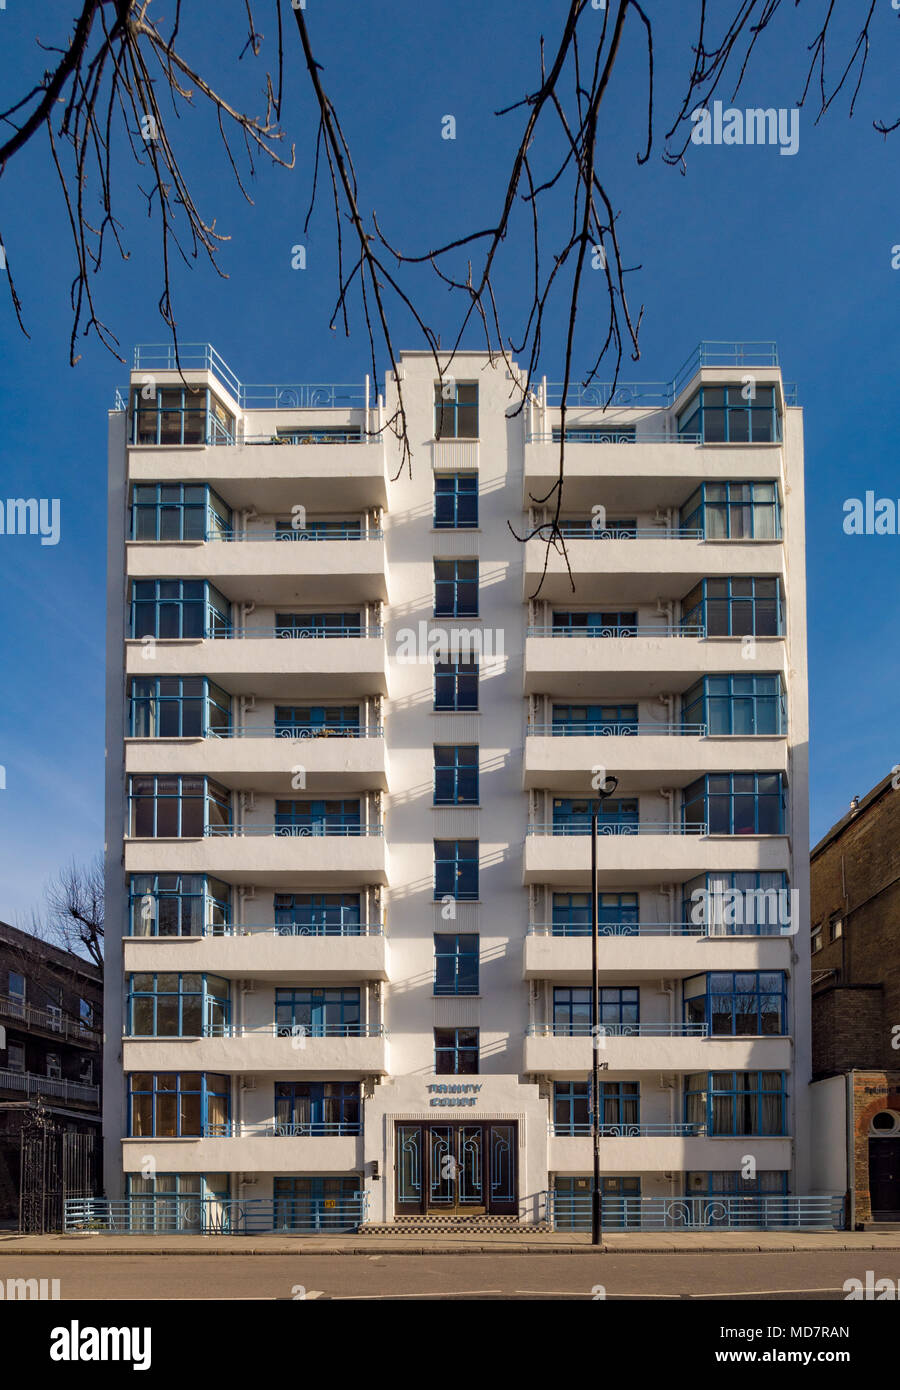 Trinity Court, a Modernist style residential apartment building on Grays Inn Road, London, UK. Designed by F Taperell and Haase. - Stock Image